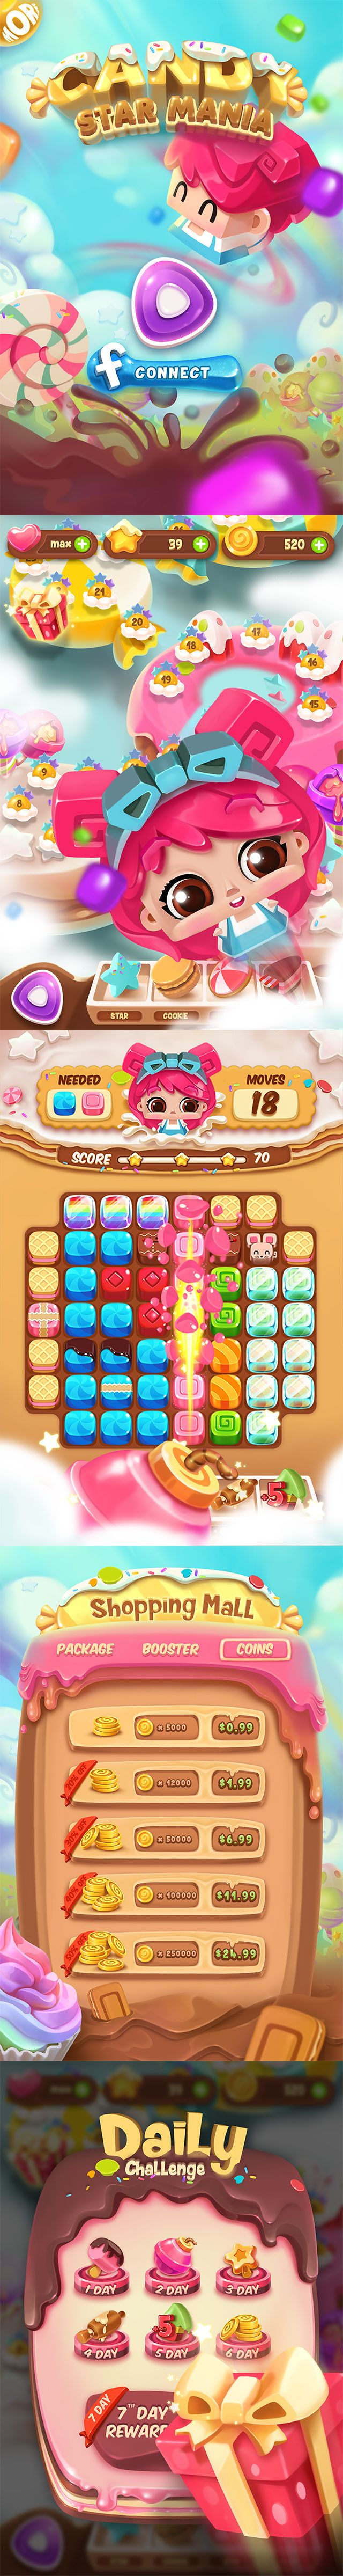 Candy Star Mania on Behance